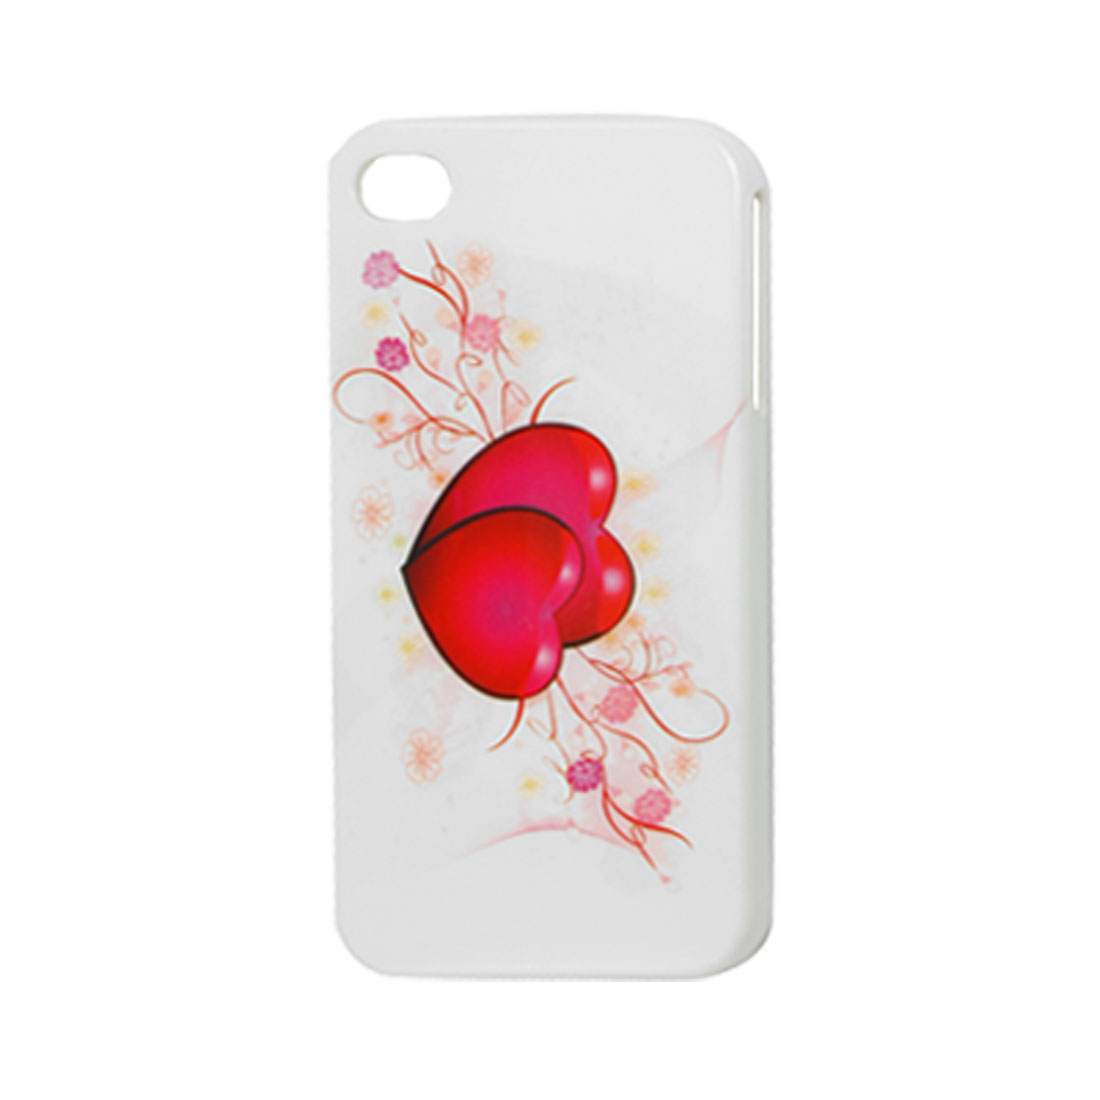 Double Red Fuchsia Heart White Hard Plastic IMD Back Case for iPhone 4 4G